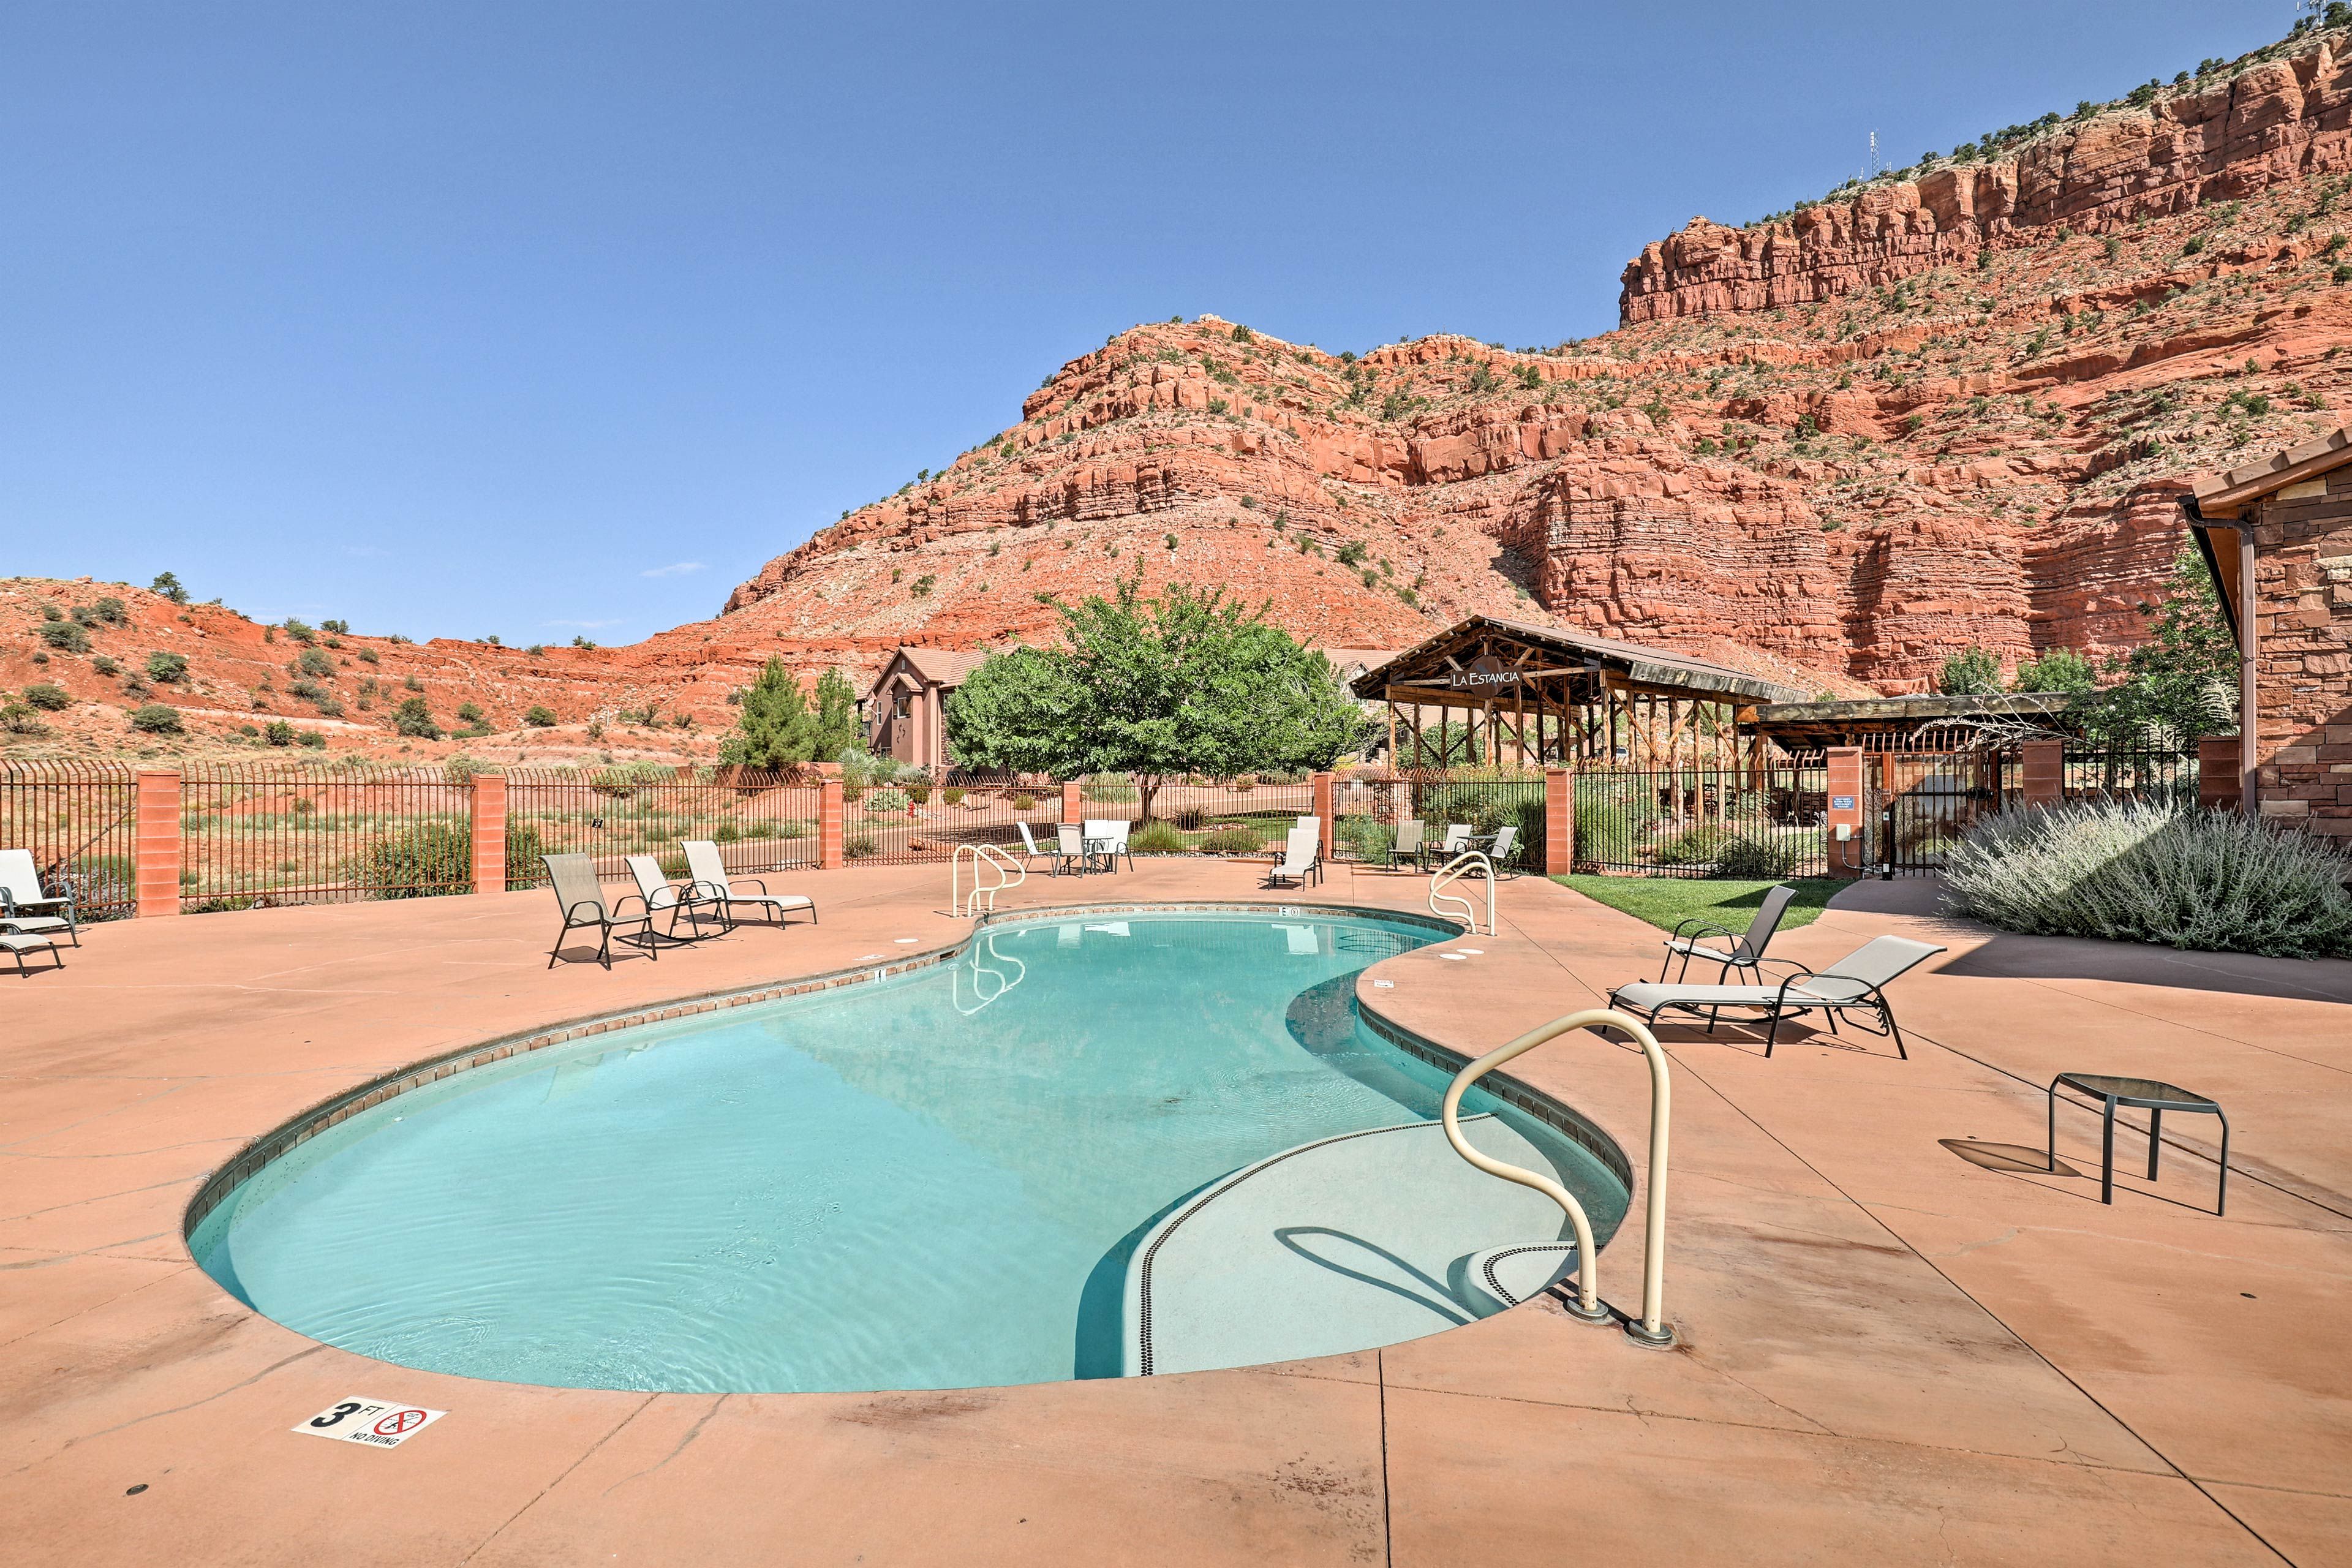 This home offers an array of luxury amenities including a community pool!